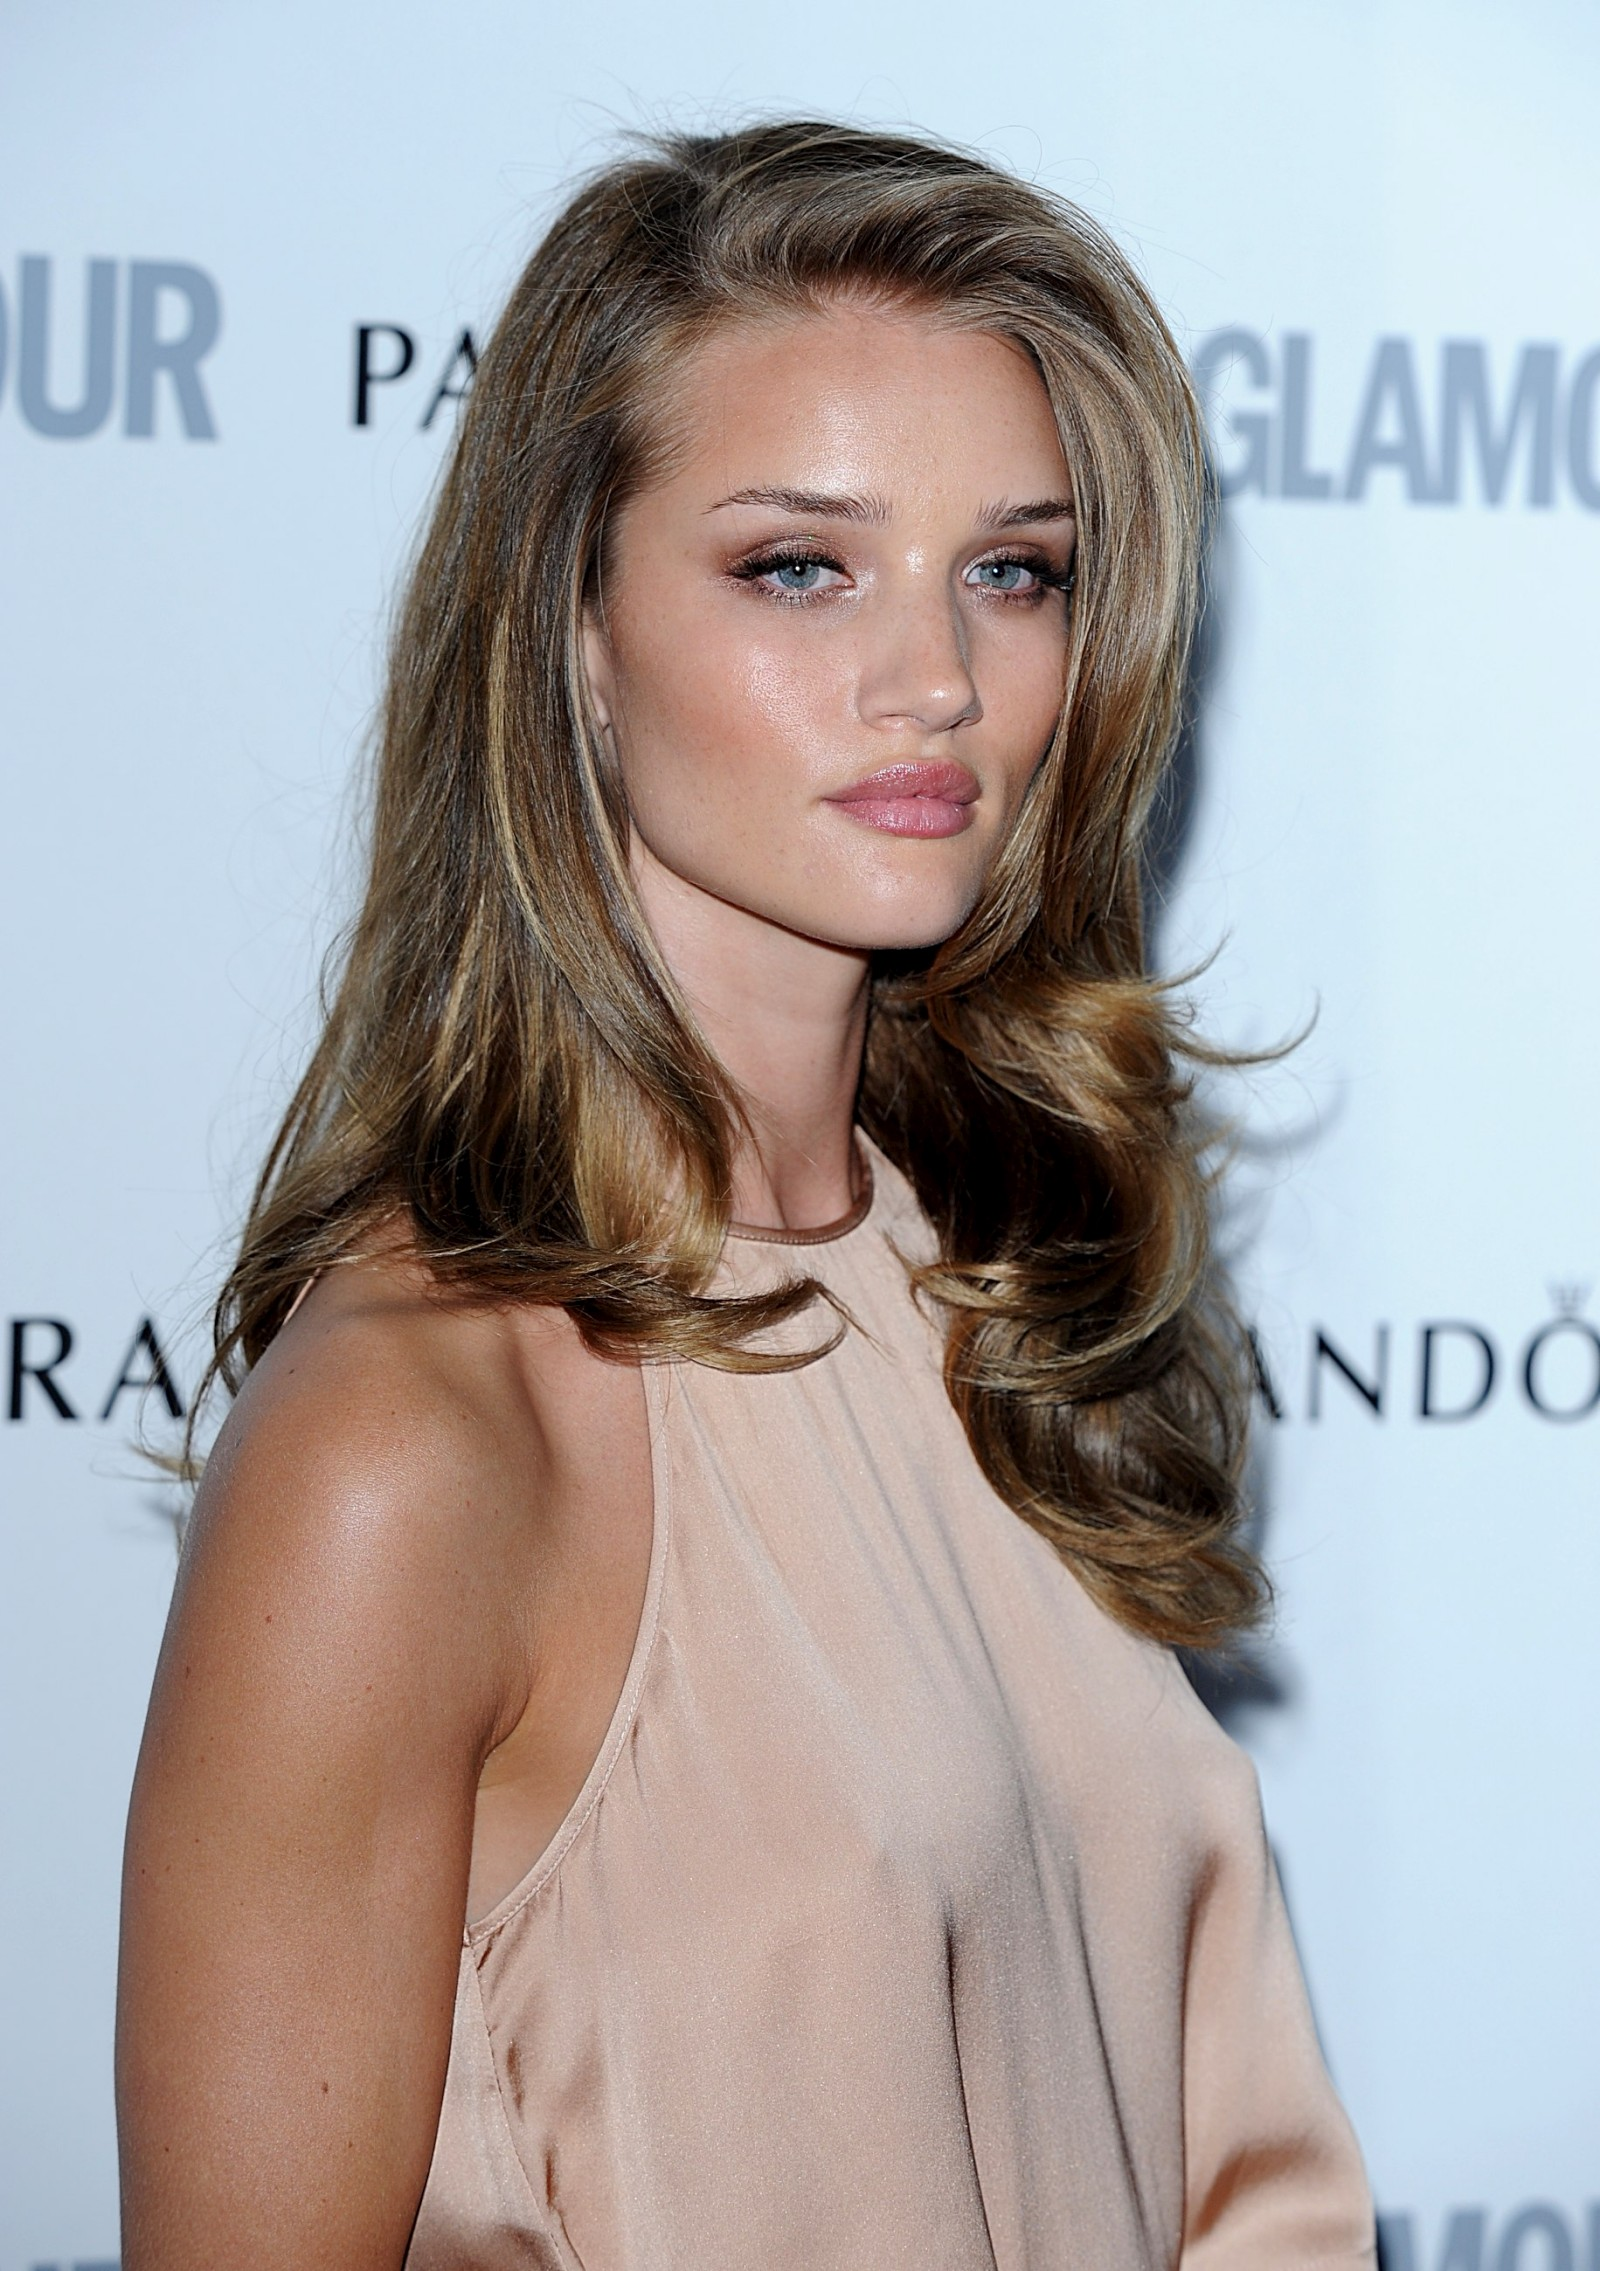 Rosie Huntington Whiteley 15 GotCeleb